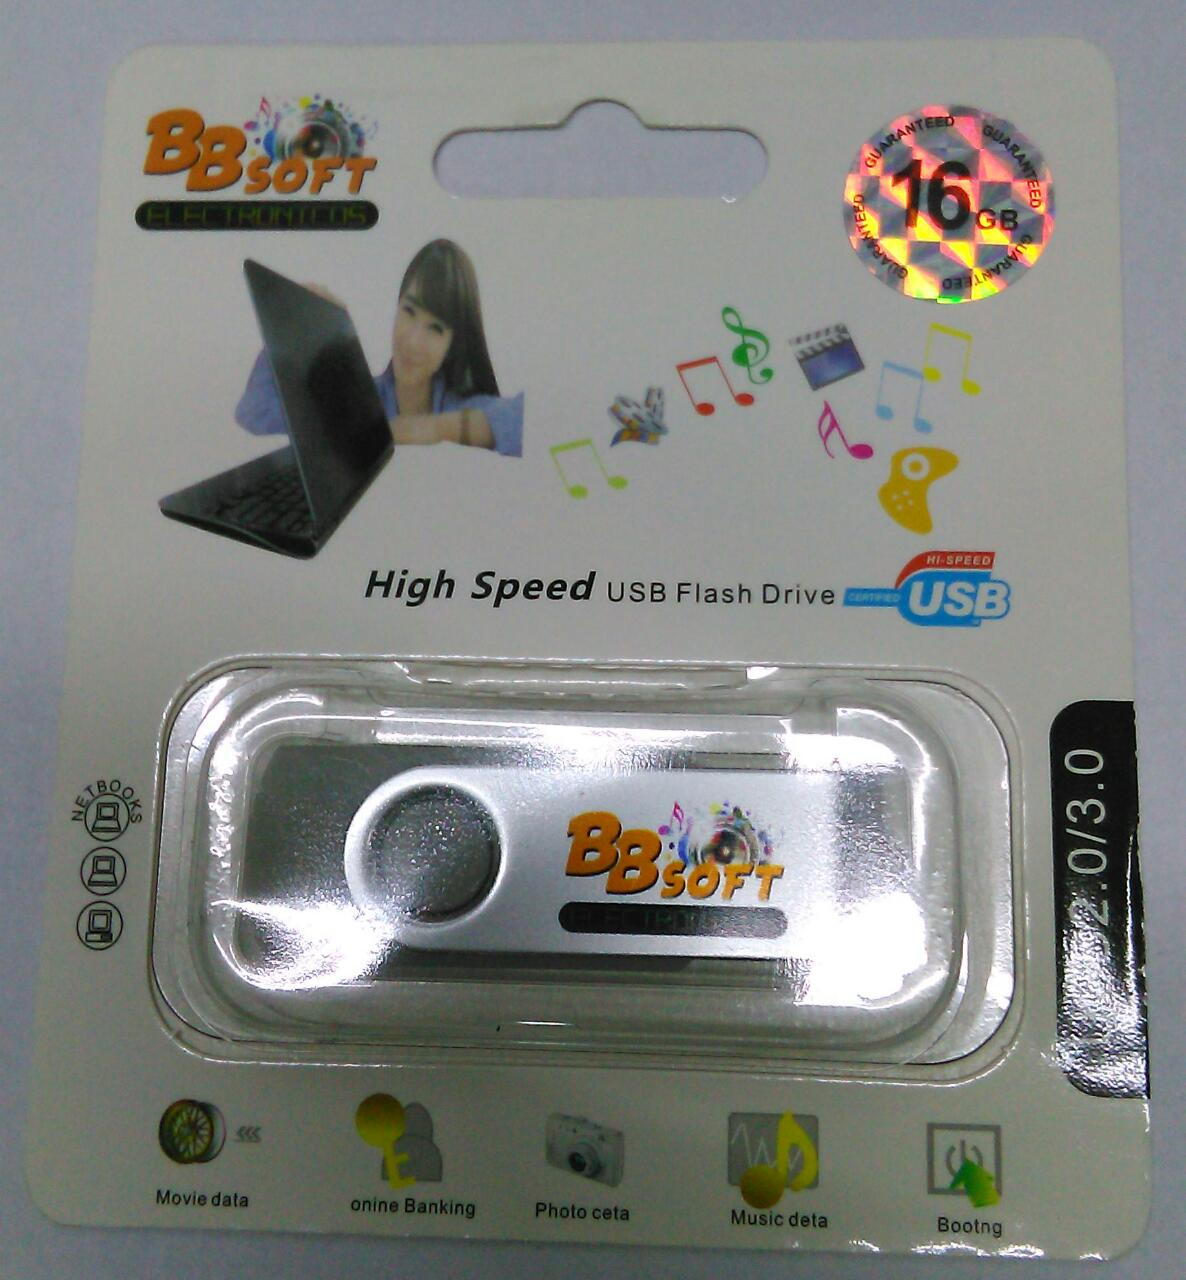 PENDRIVE 16GB GRIS USB 2.0/3.0 BBSOFT HIGH SPEED CON LUZ